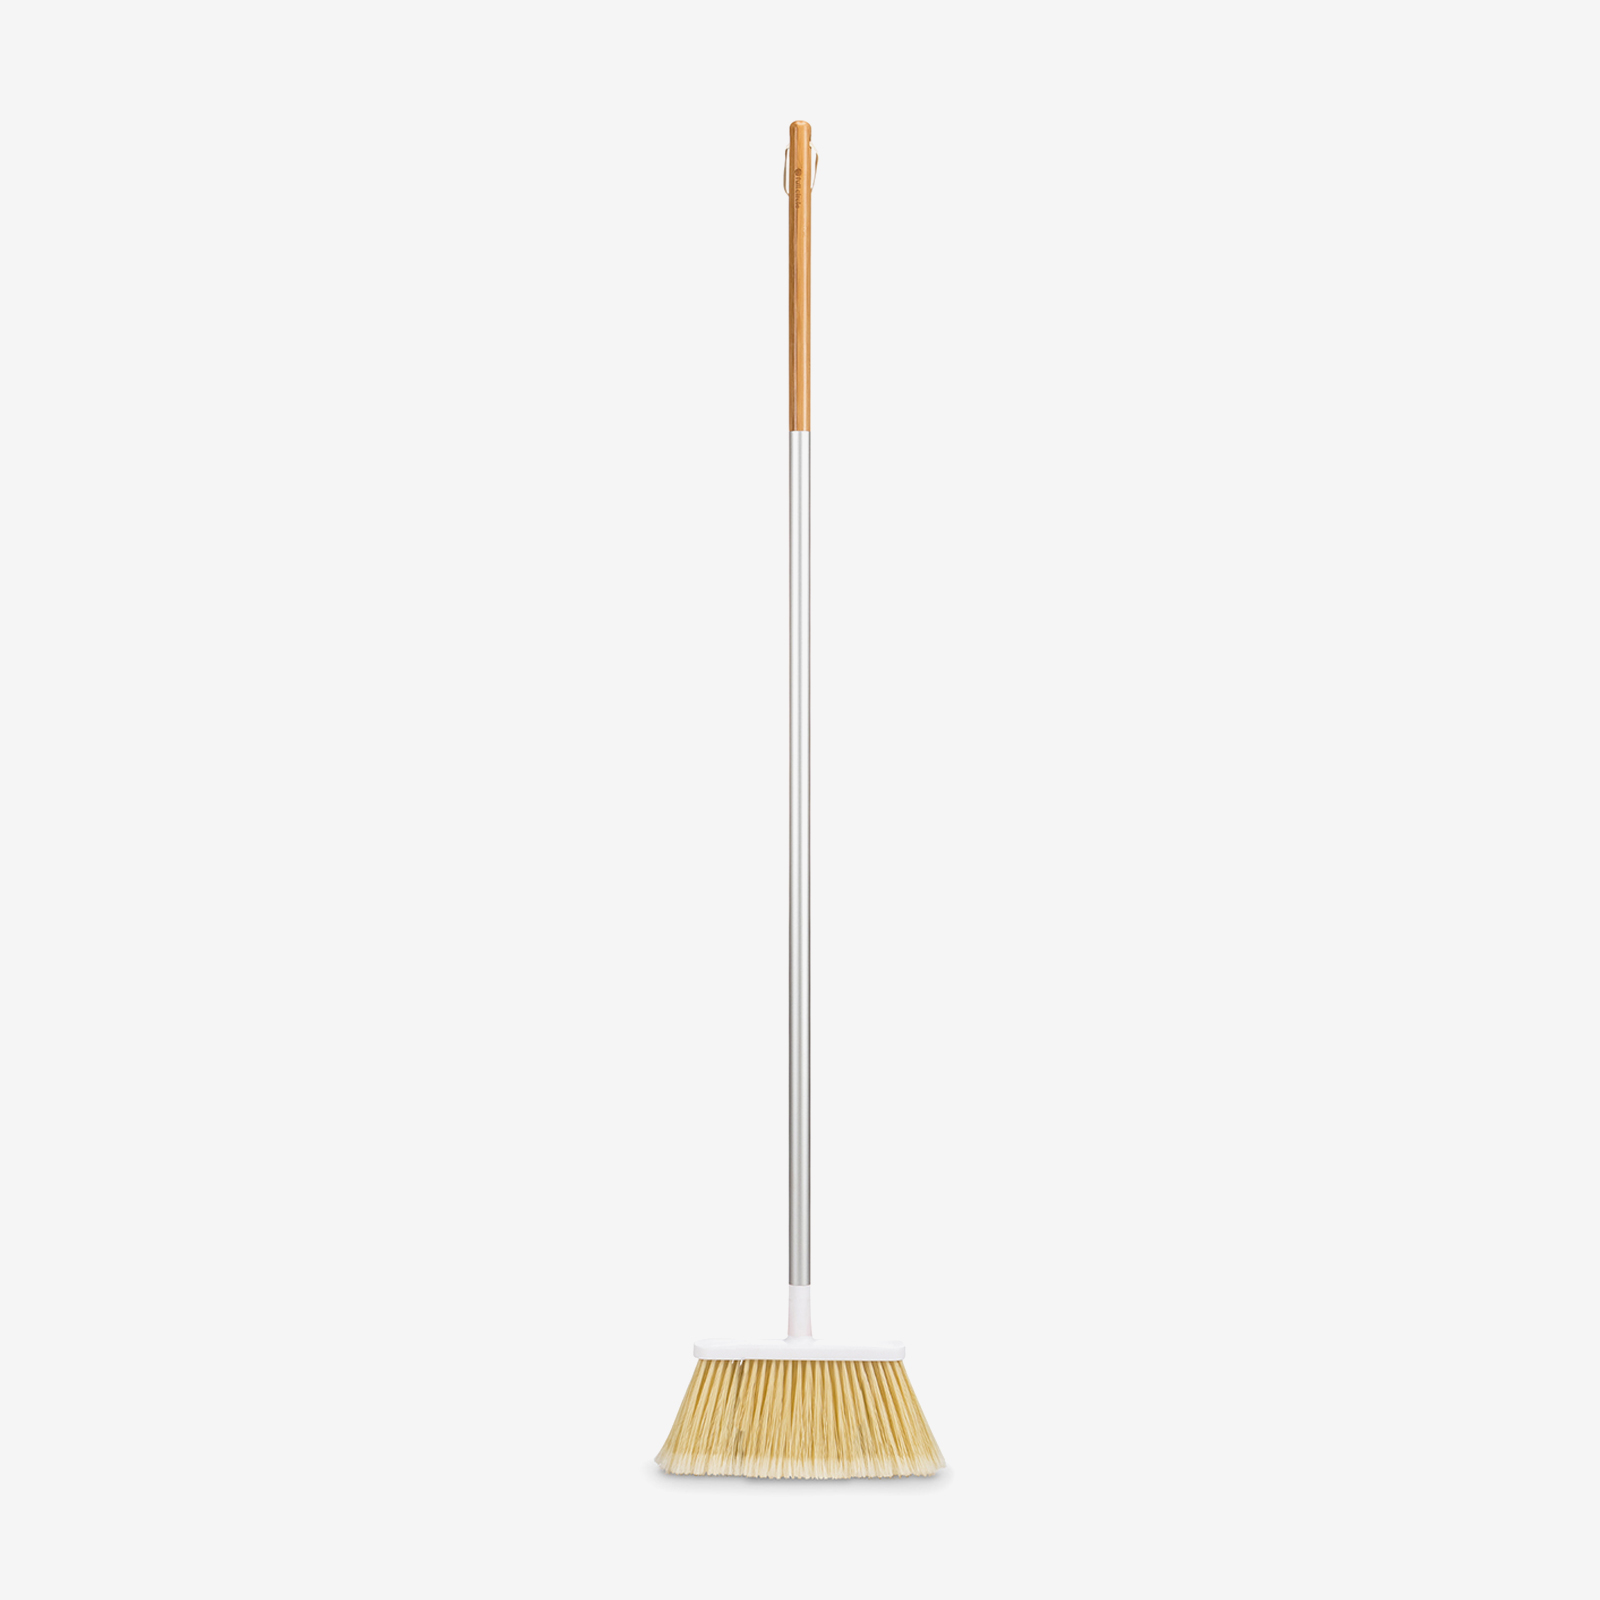 Broom product image